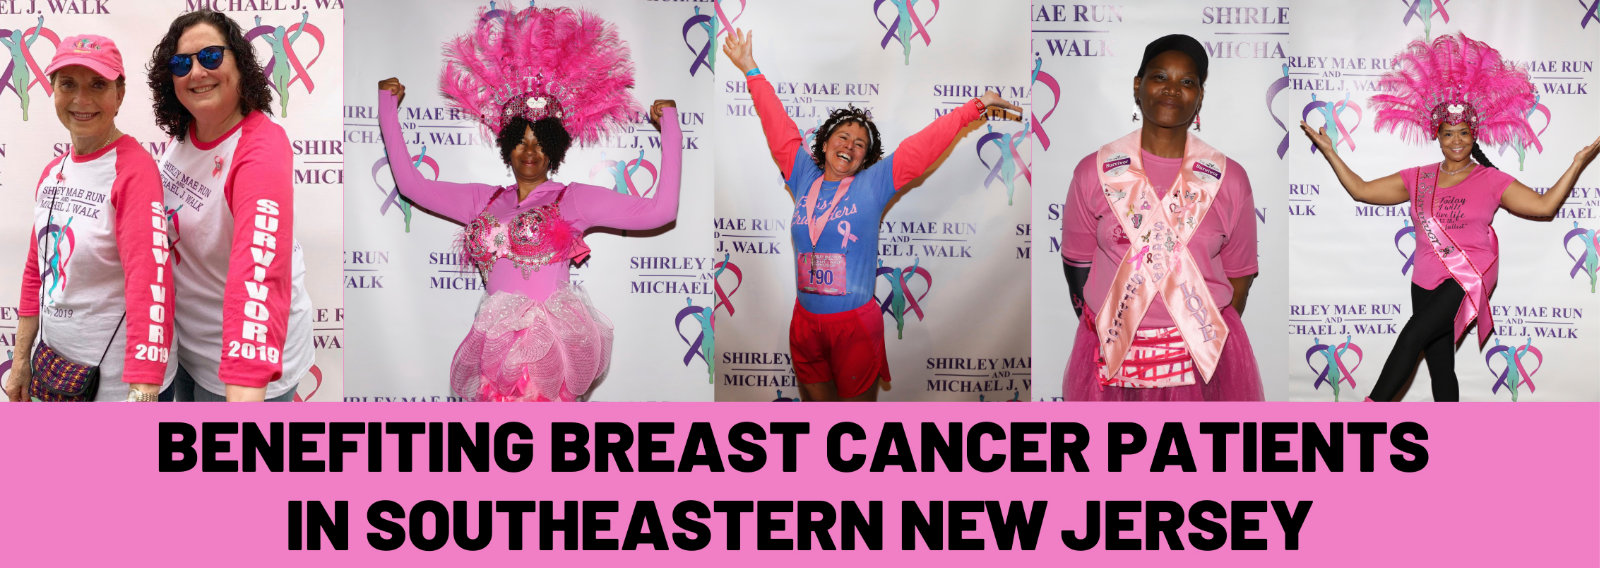 Benefiting breast cancer patients in Southeastern New Jersey